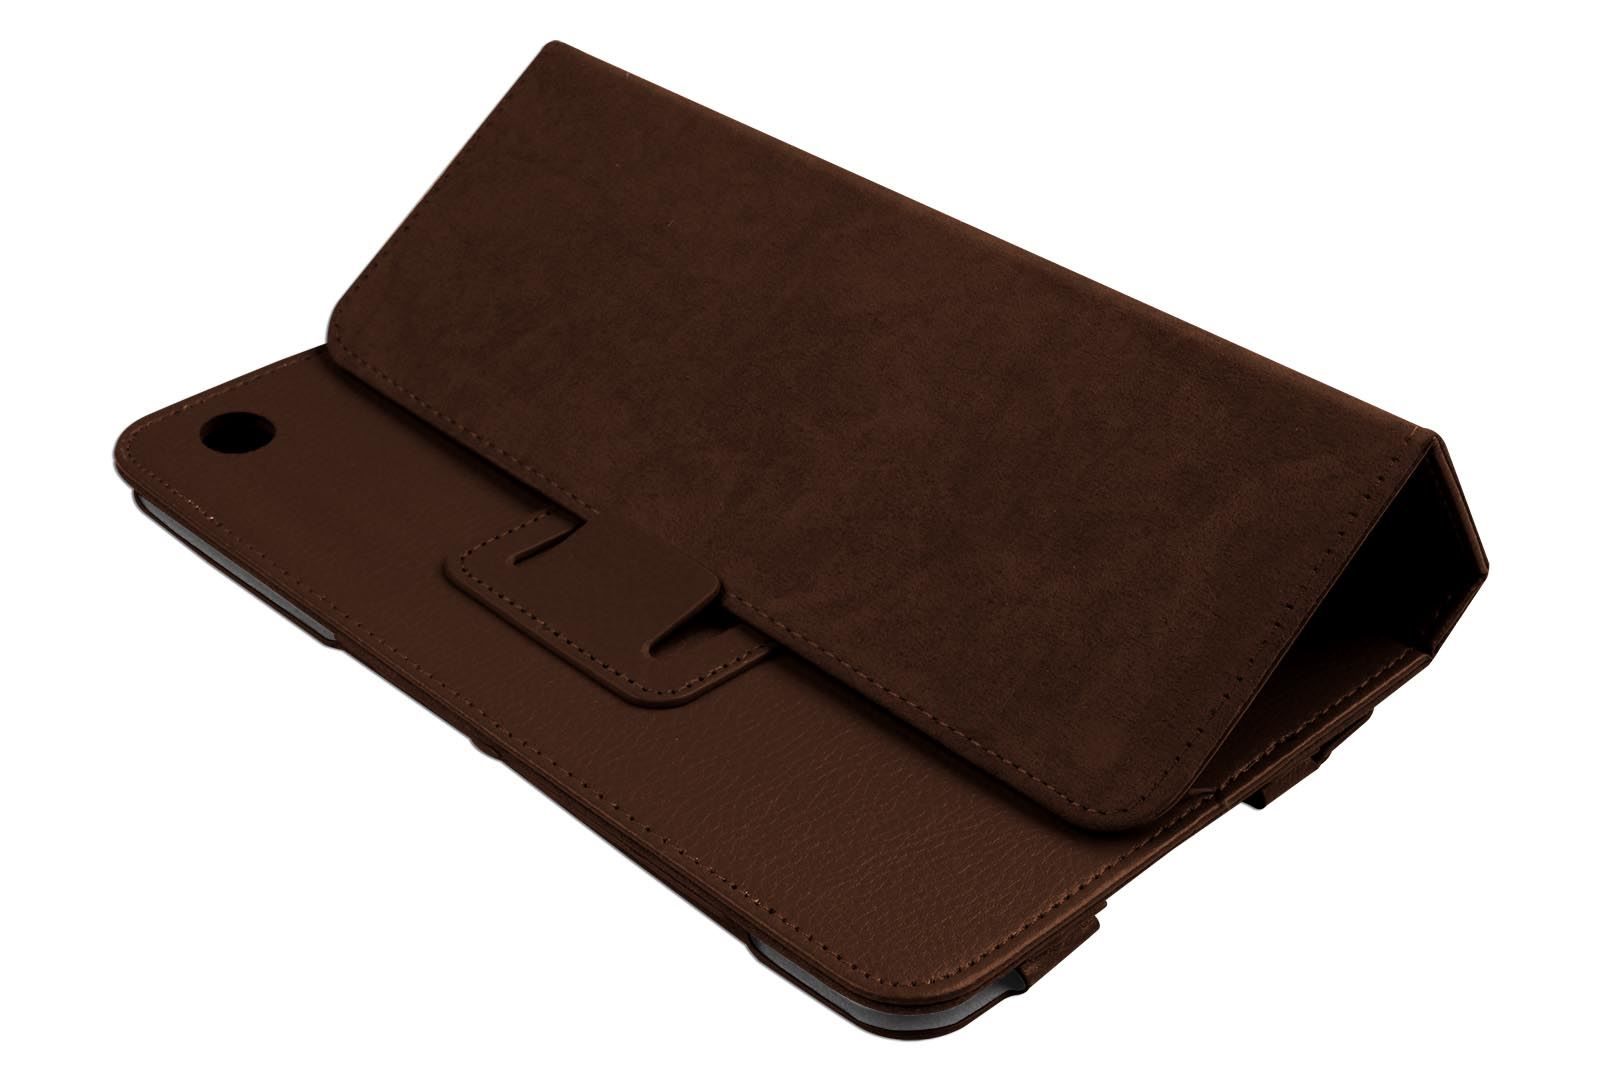 Hellfire-Trading-Magnetic-PU-Leather-Case-Cover-for-Lenovo-IdeaTab-A8-50-A5500 Indexbild 41